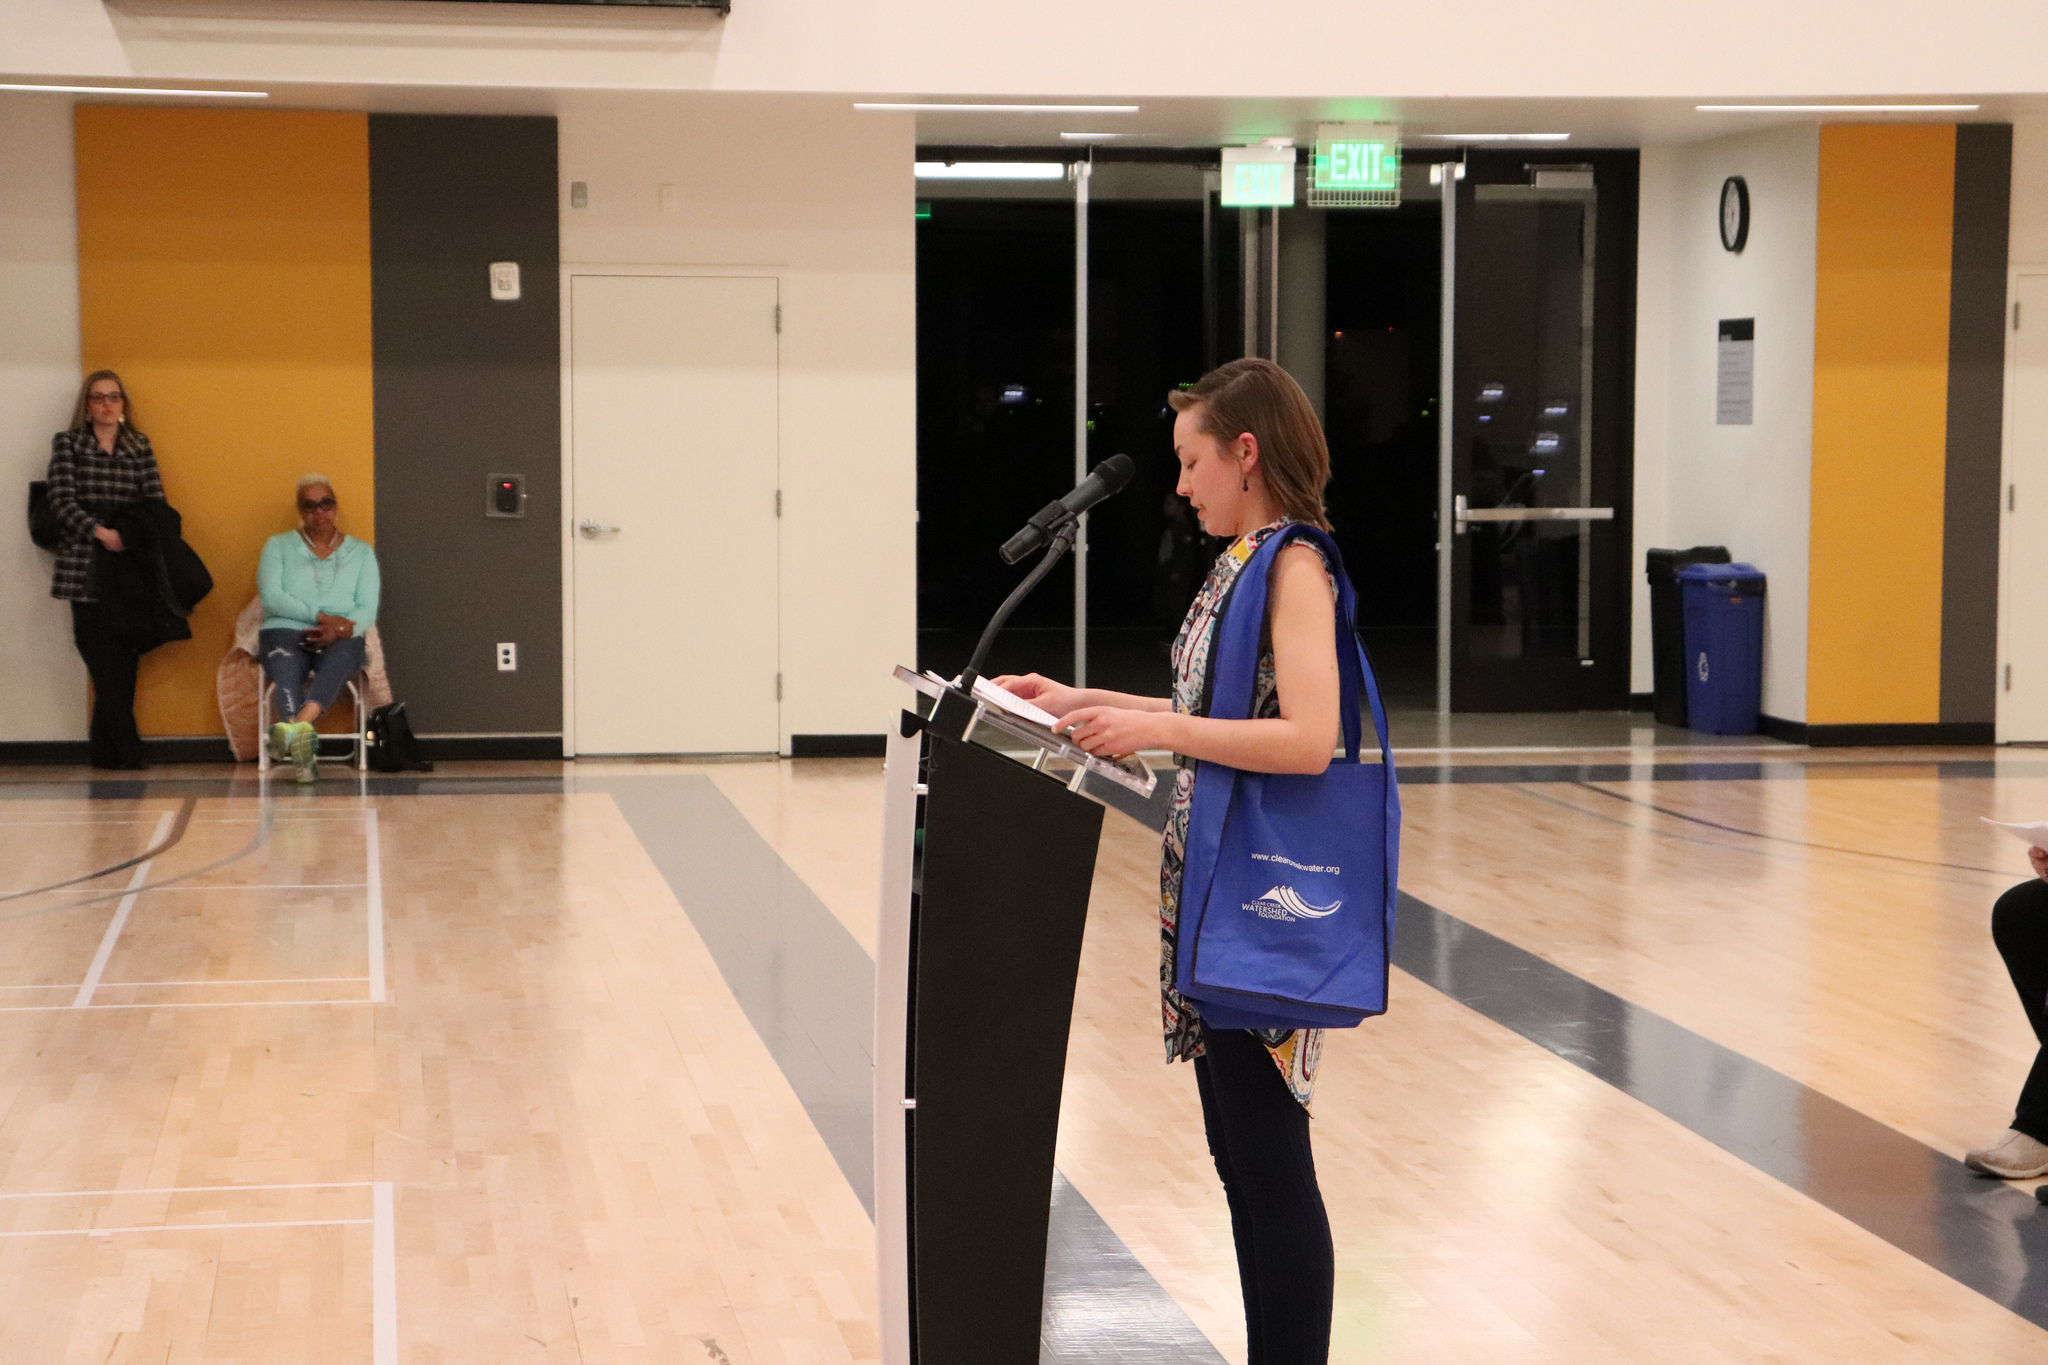 Mallory Hiss, with Cherry Creek Stewardship Partners, presented the awards at the 2019 Science Fair ceremony.